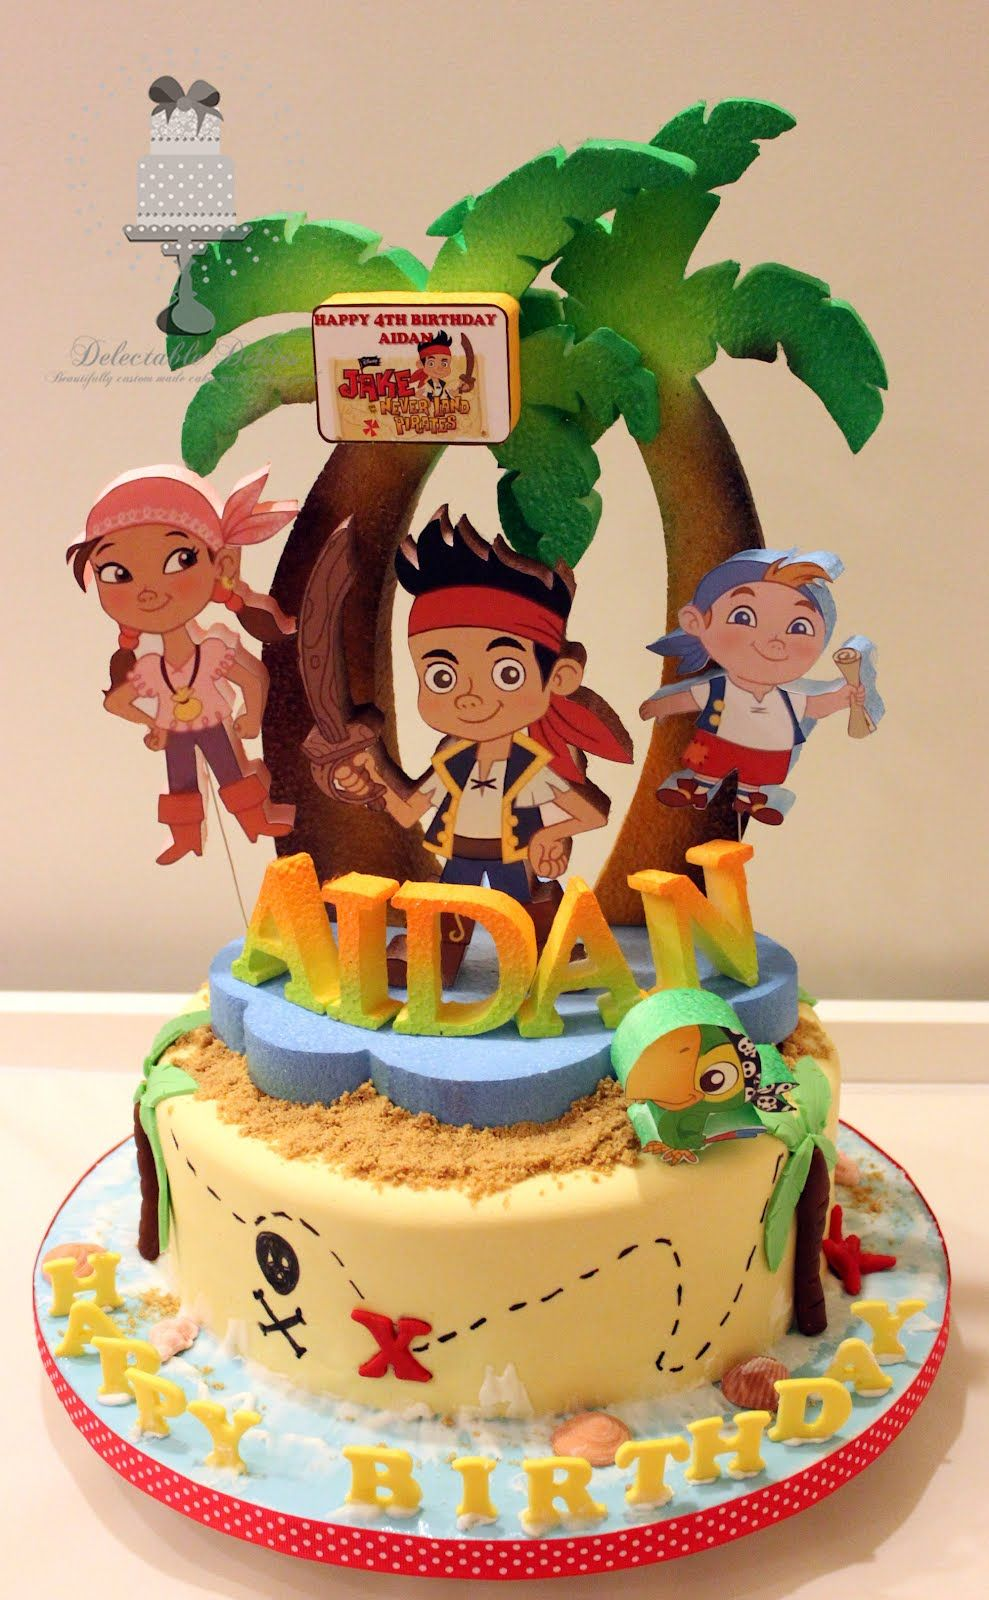 Strange Jake And The Neverland Pirates Izzy Icing Birthday Cake Topper Funny Birthday Cards Online Inifodamsfinfo